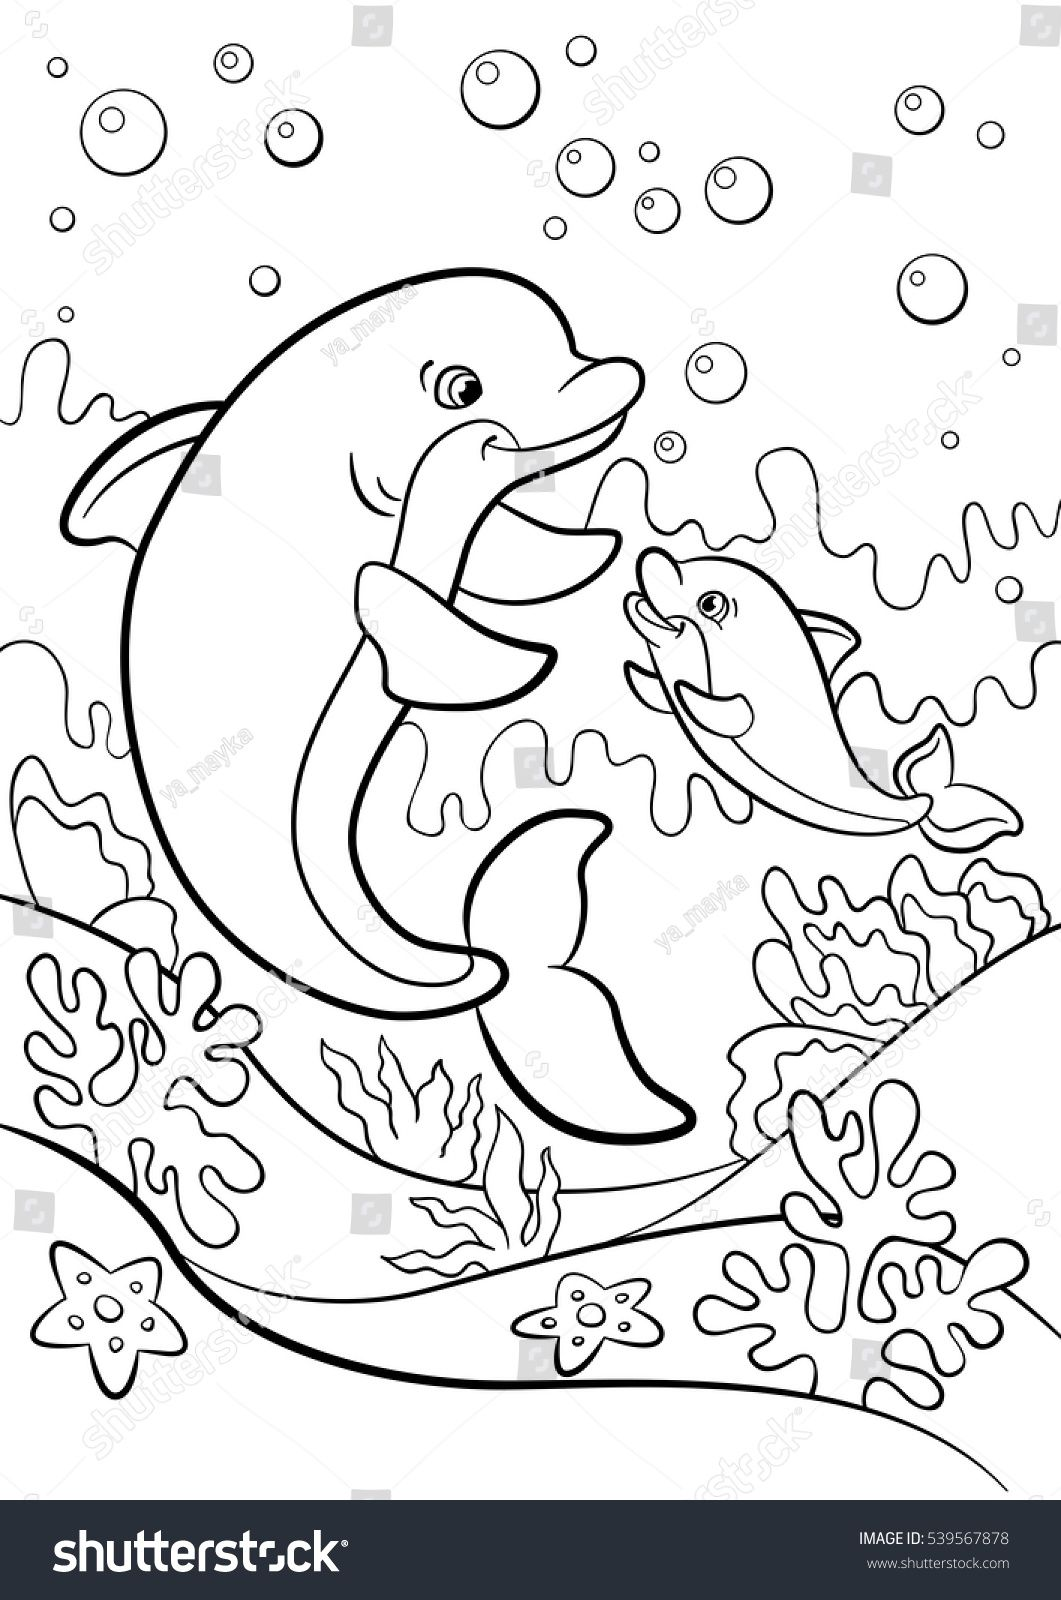 Stock Vector Coloring Pages Marine Wild Animals Mother Dolphin